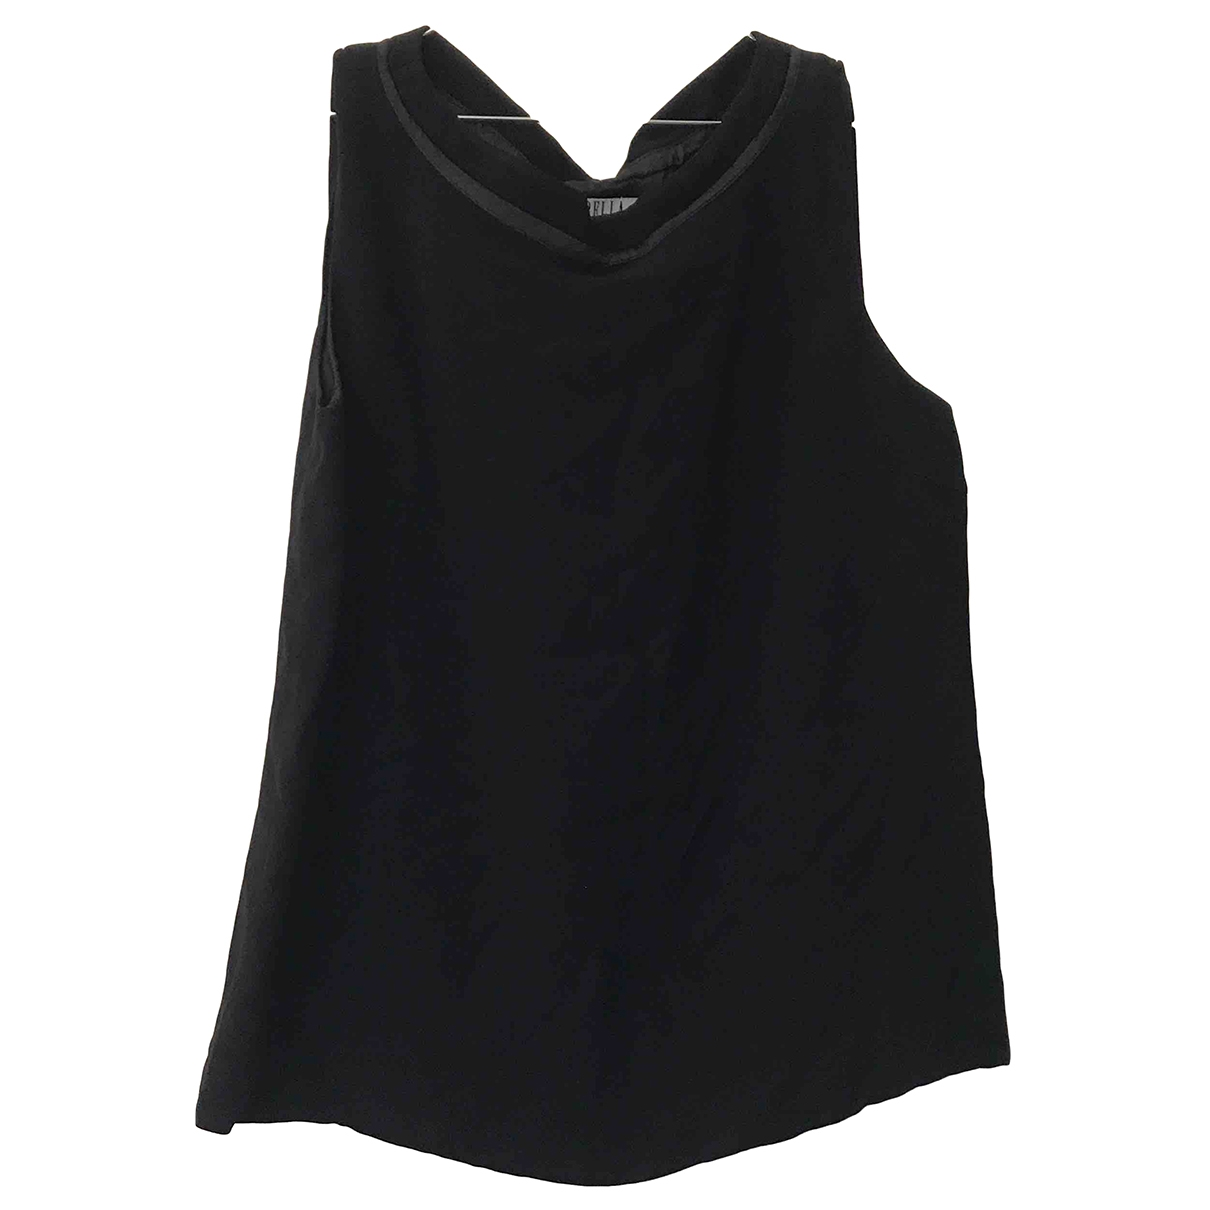 Marella \N Black  top for Women 44 IT